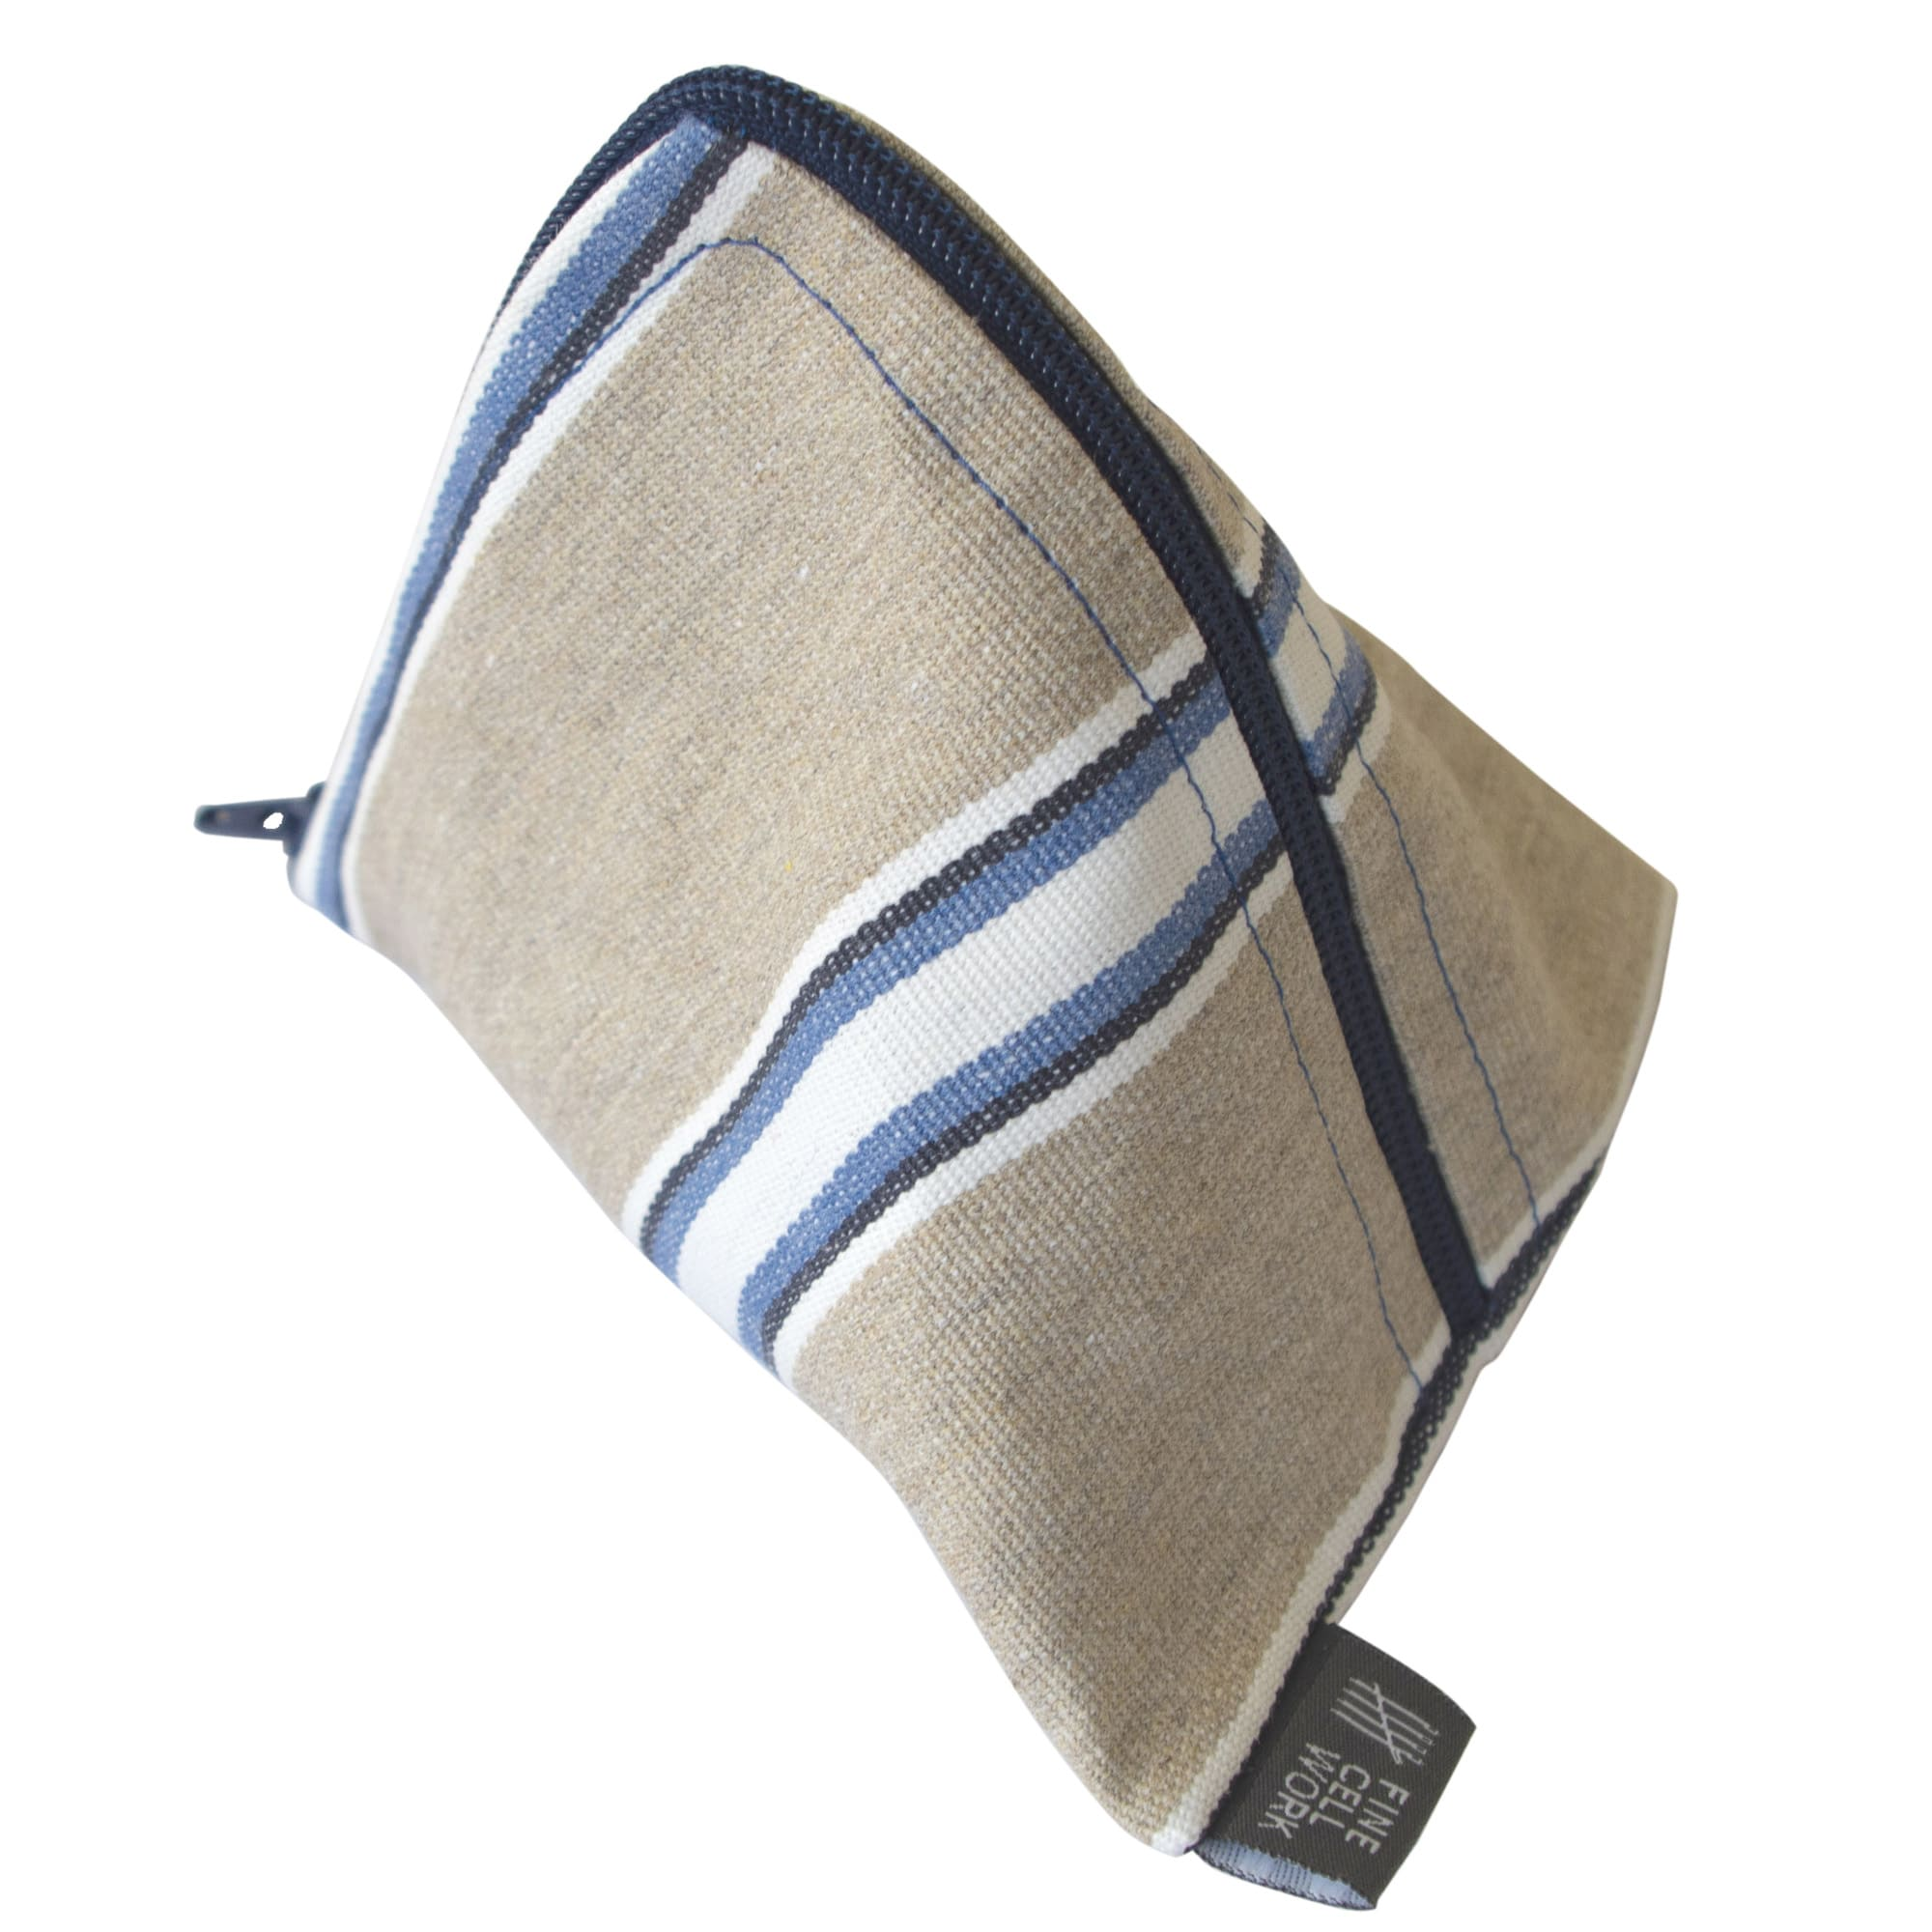 Cable Tidy Pouch in Wicket Indigo Fabric